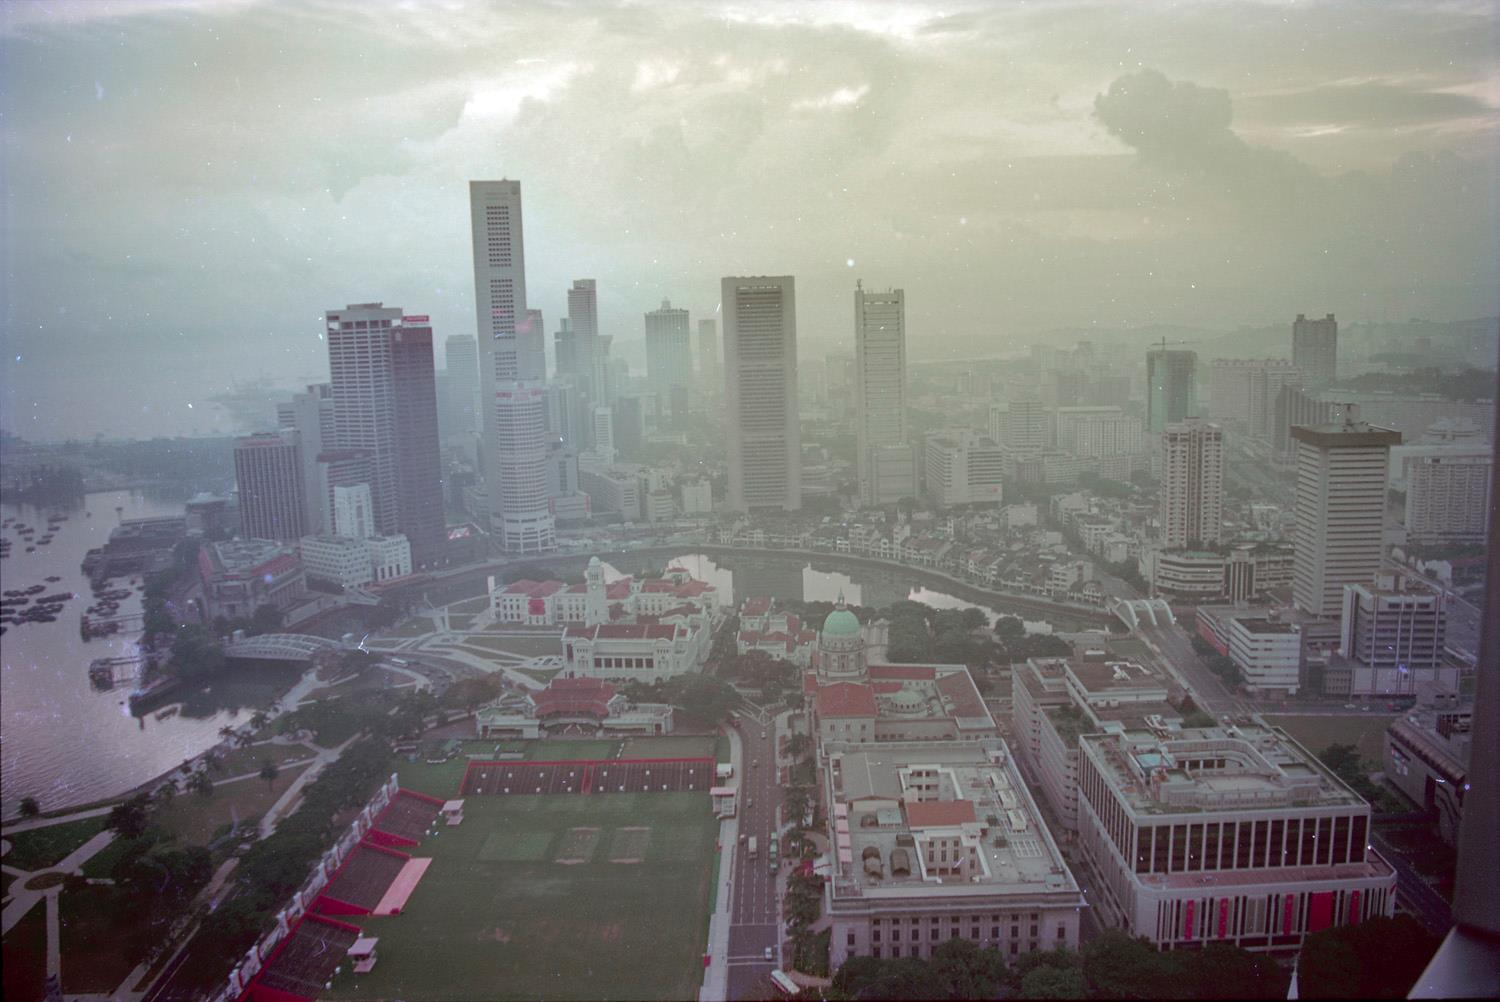 The Singapore skyline as seen from the (then) Westin Stamford in 1990. (Photo by Darren Soh)